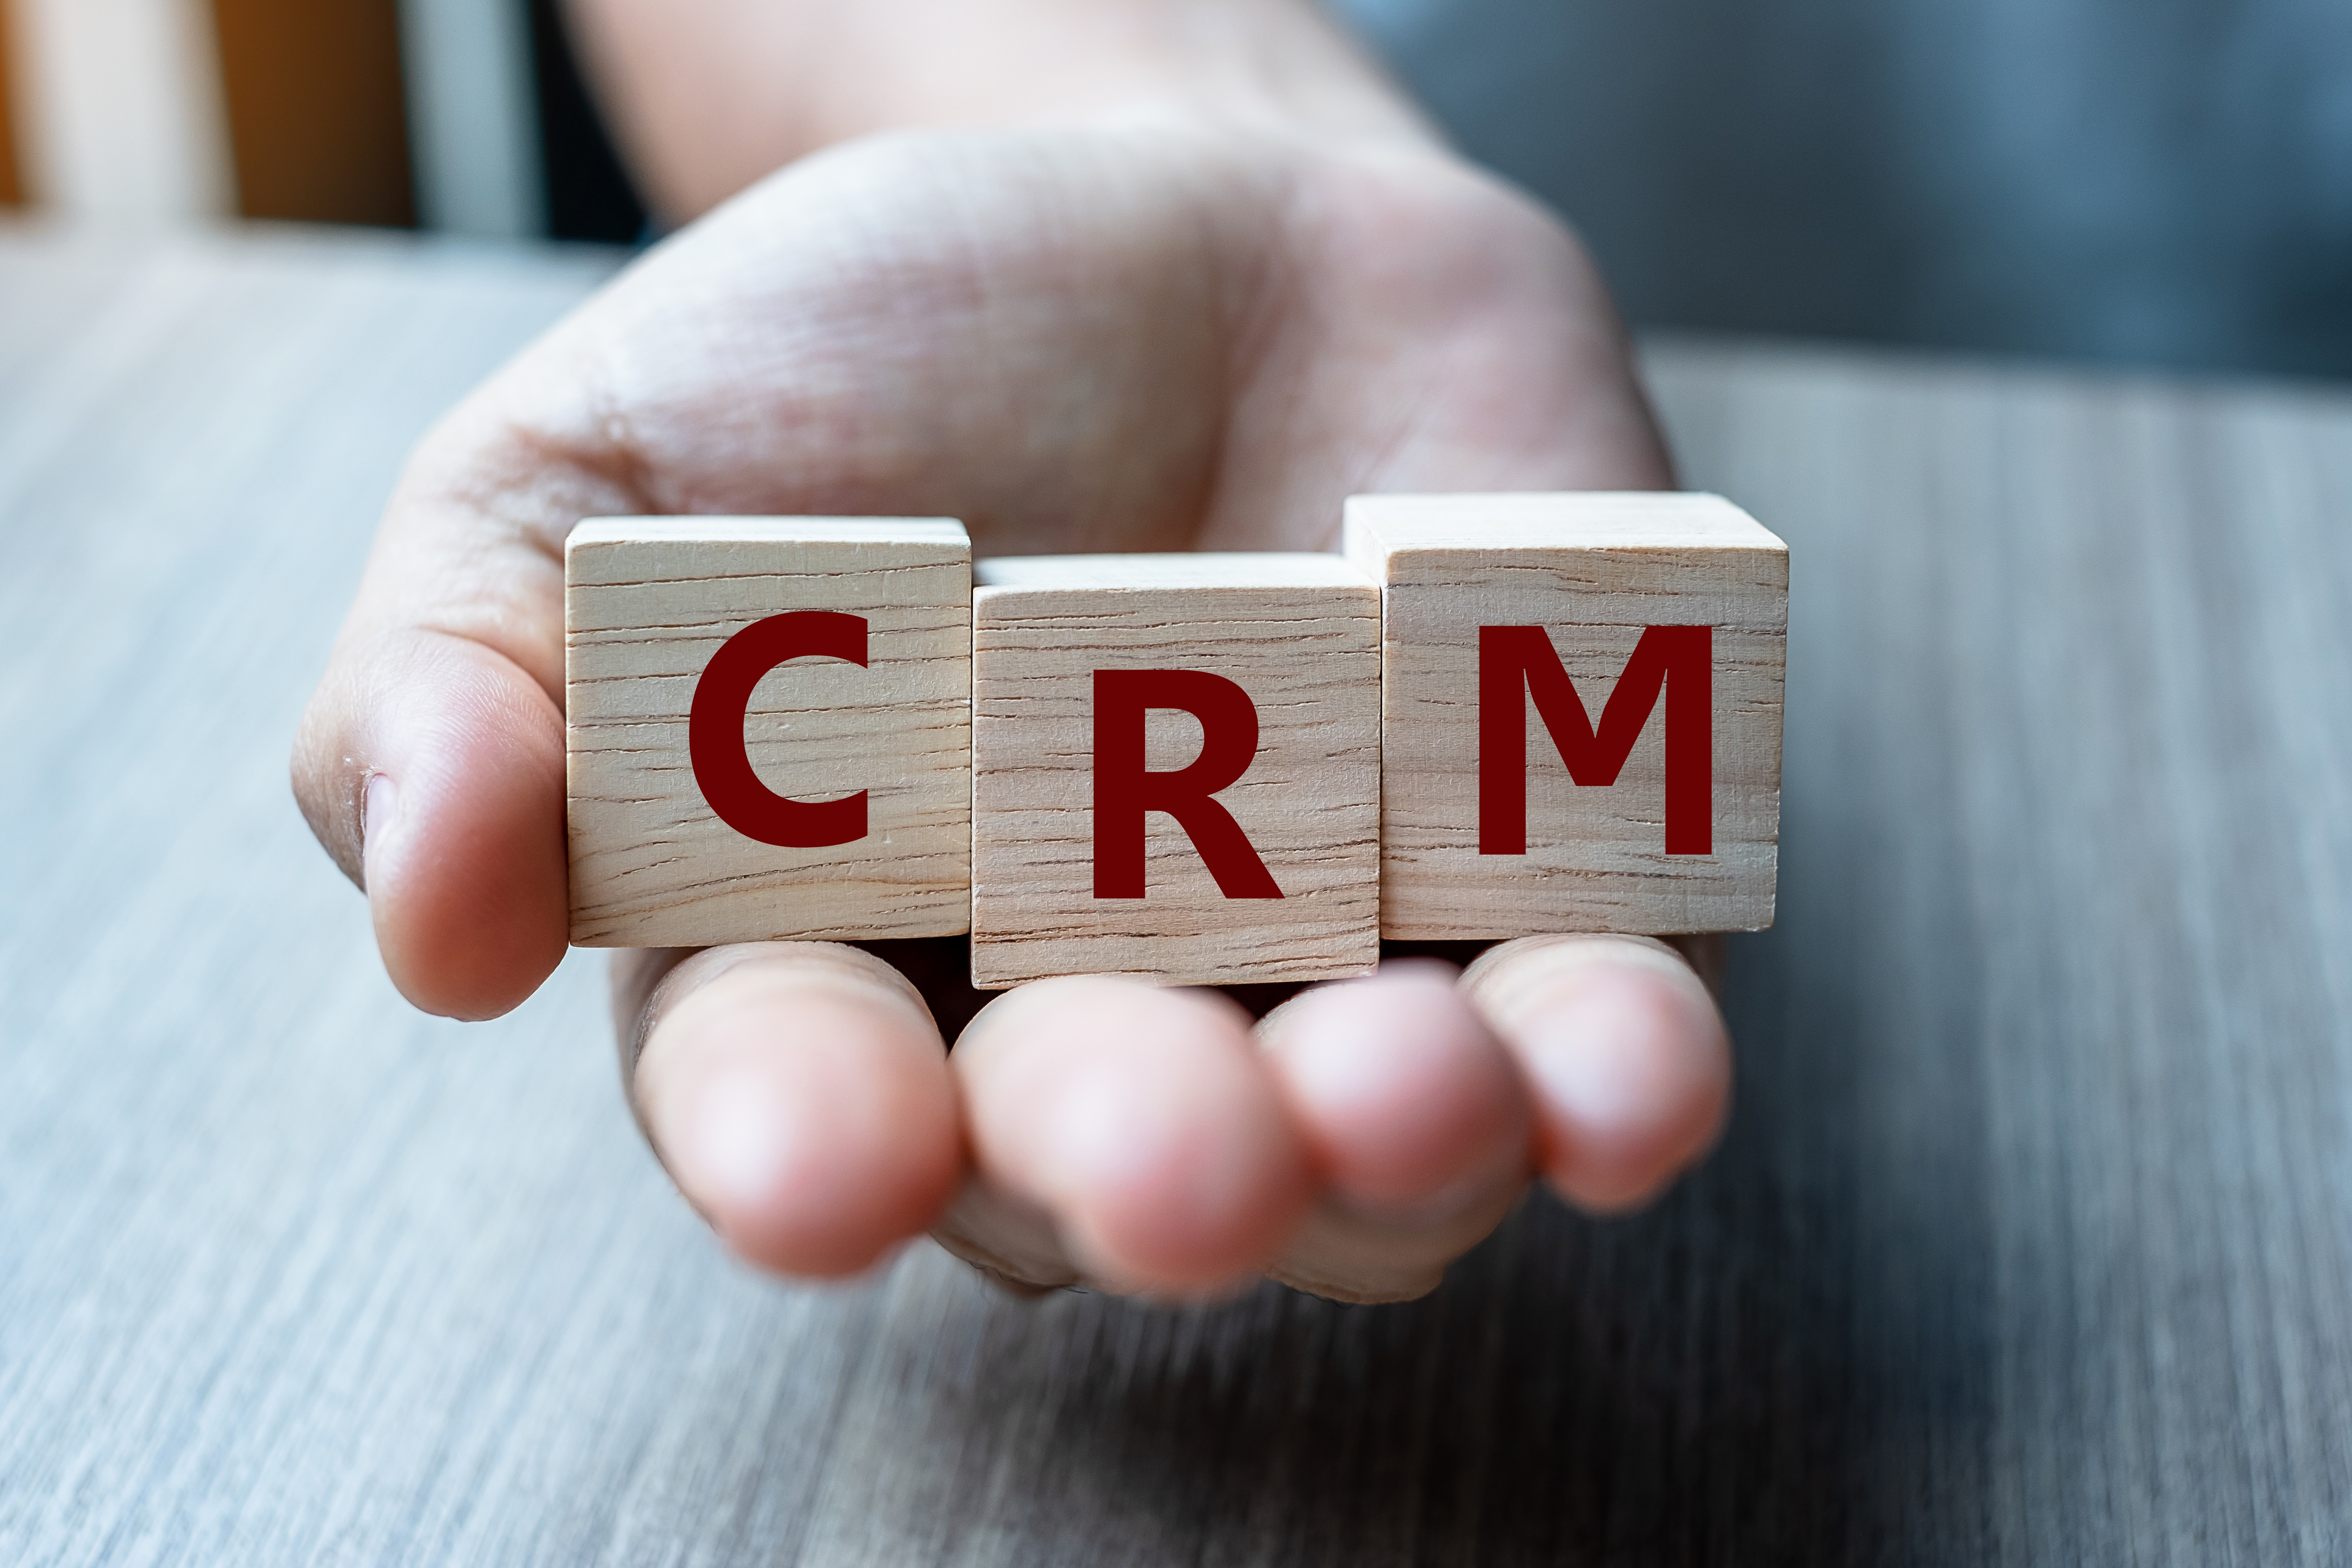 business-woman-hand-holding-wooden-cube-with-crm-t-B7PMTGA-jpg